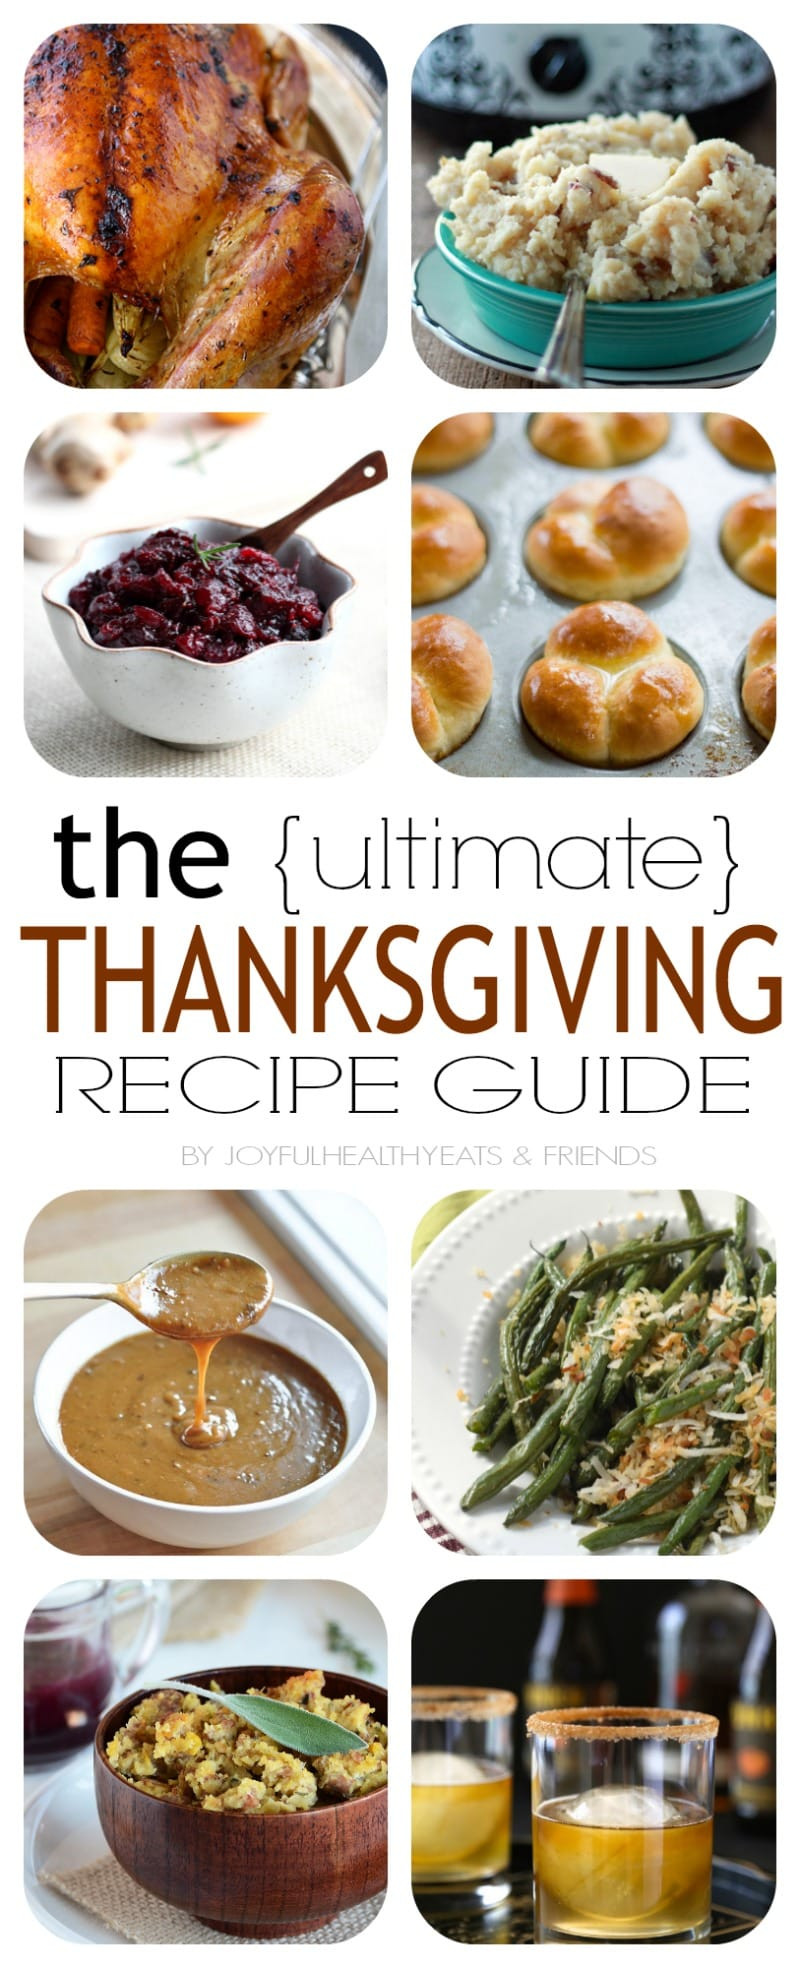 Turkey Recipes Thanksgiving  The Ultimate Thanksgiving Recipe Guide with 39 Amazing Recipes